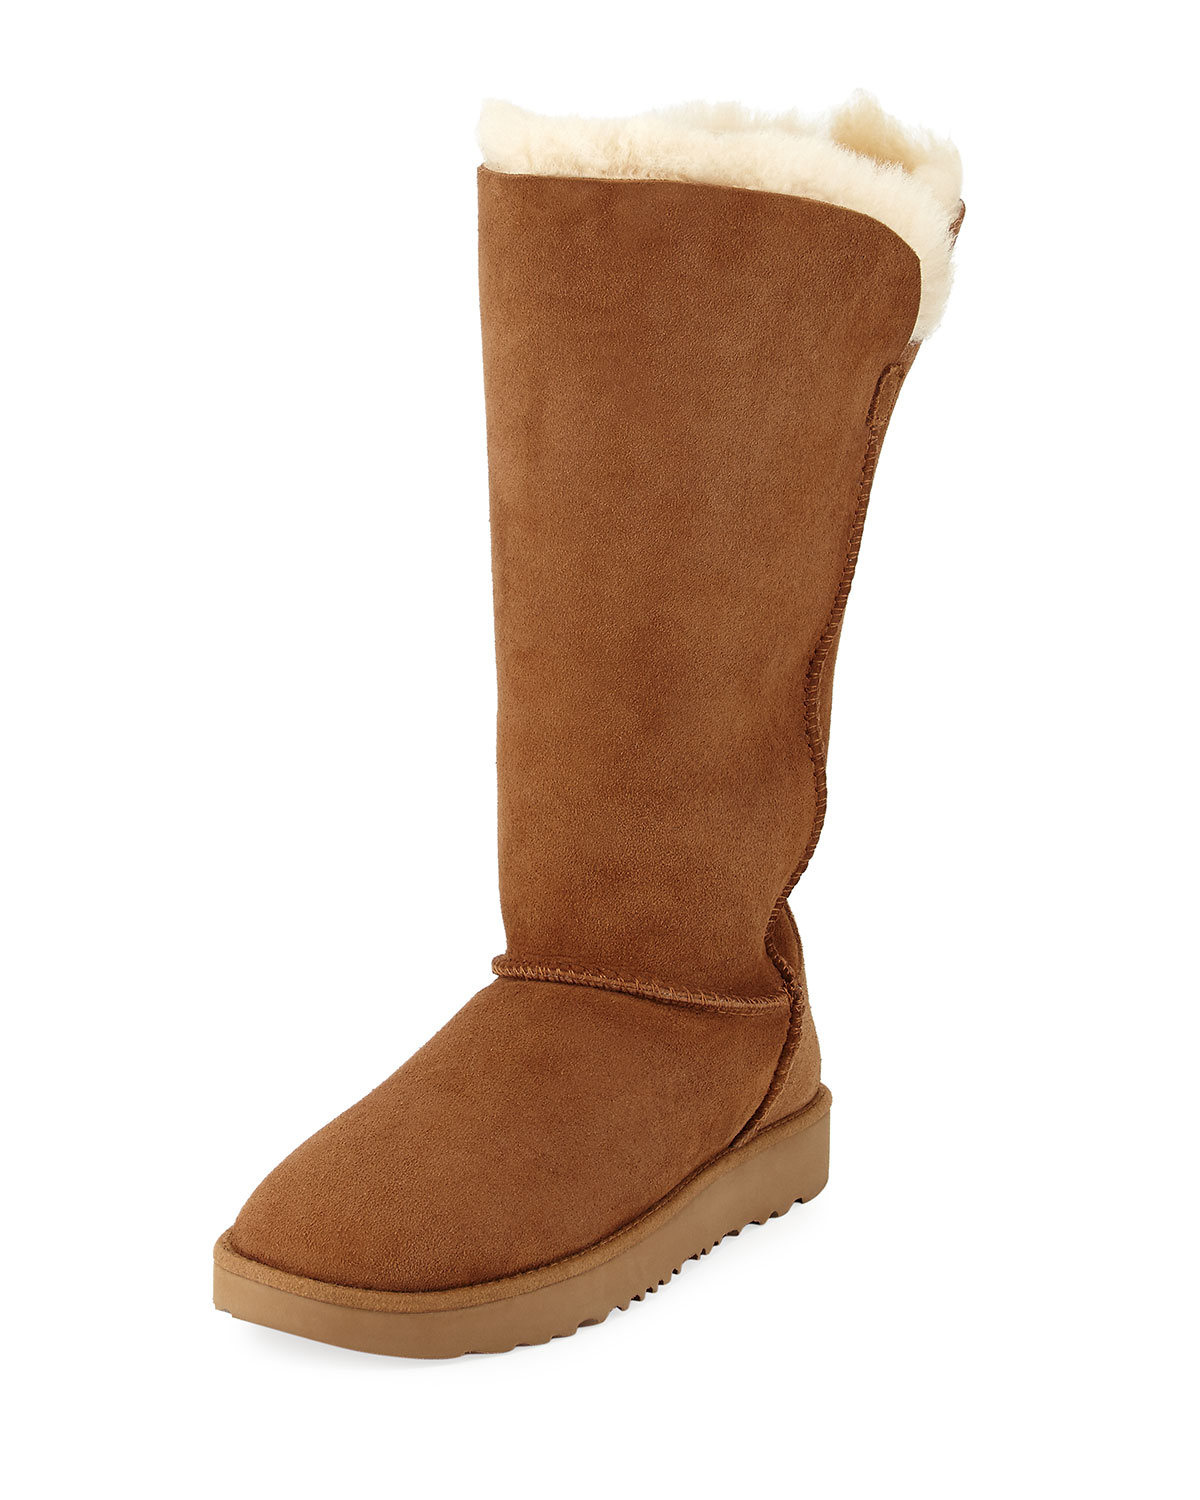 6bea0bbba2d Classic Cuff Tall Stitched Shearling Boot